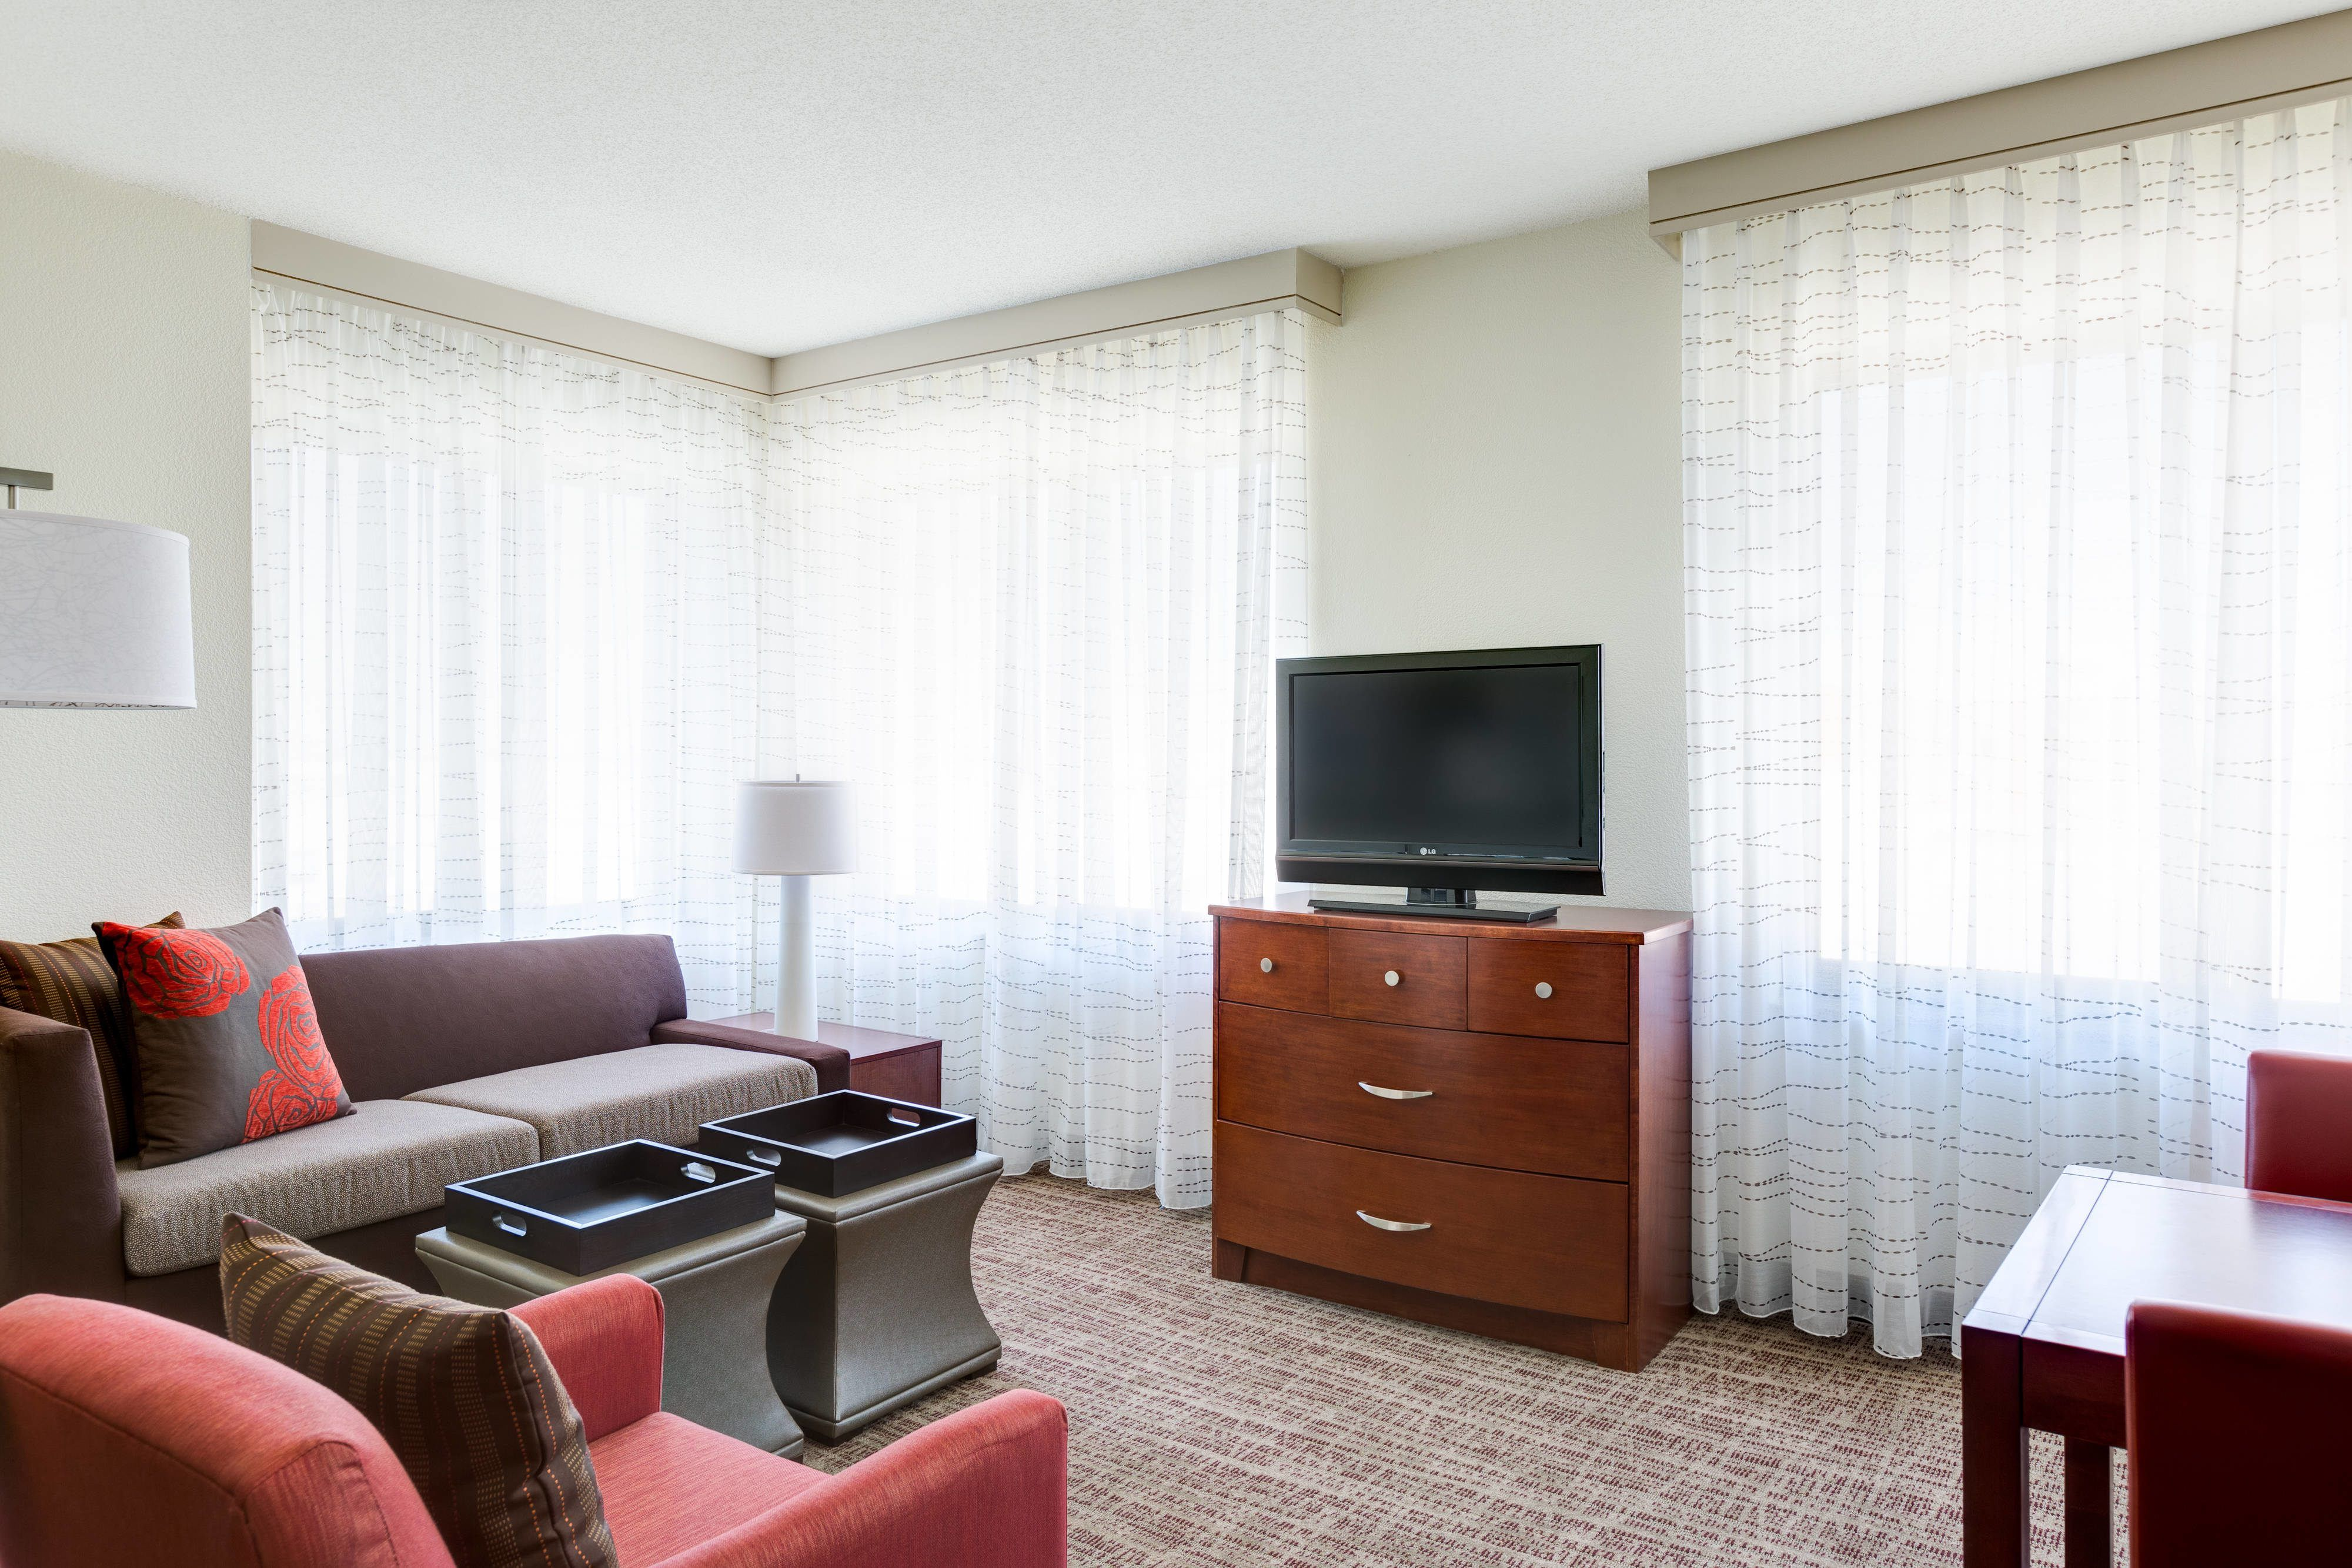 Residence Inn National Harbor Washington Dc Area Two Bedroom Suite Living Area Holidays Hotel Enjoy Two Bedroom Suites Maryland Hotels Hotel